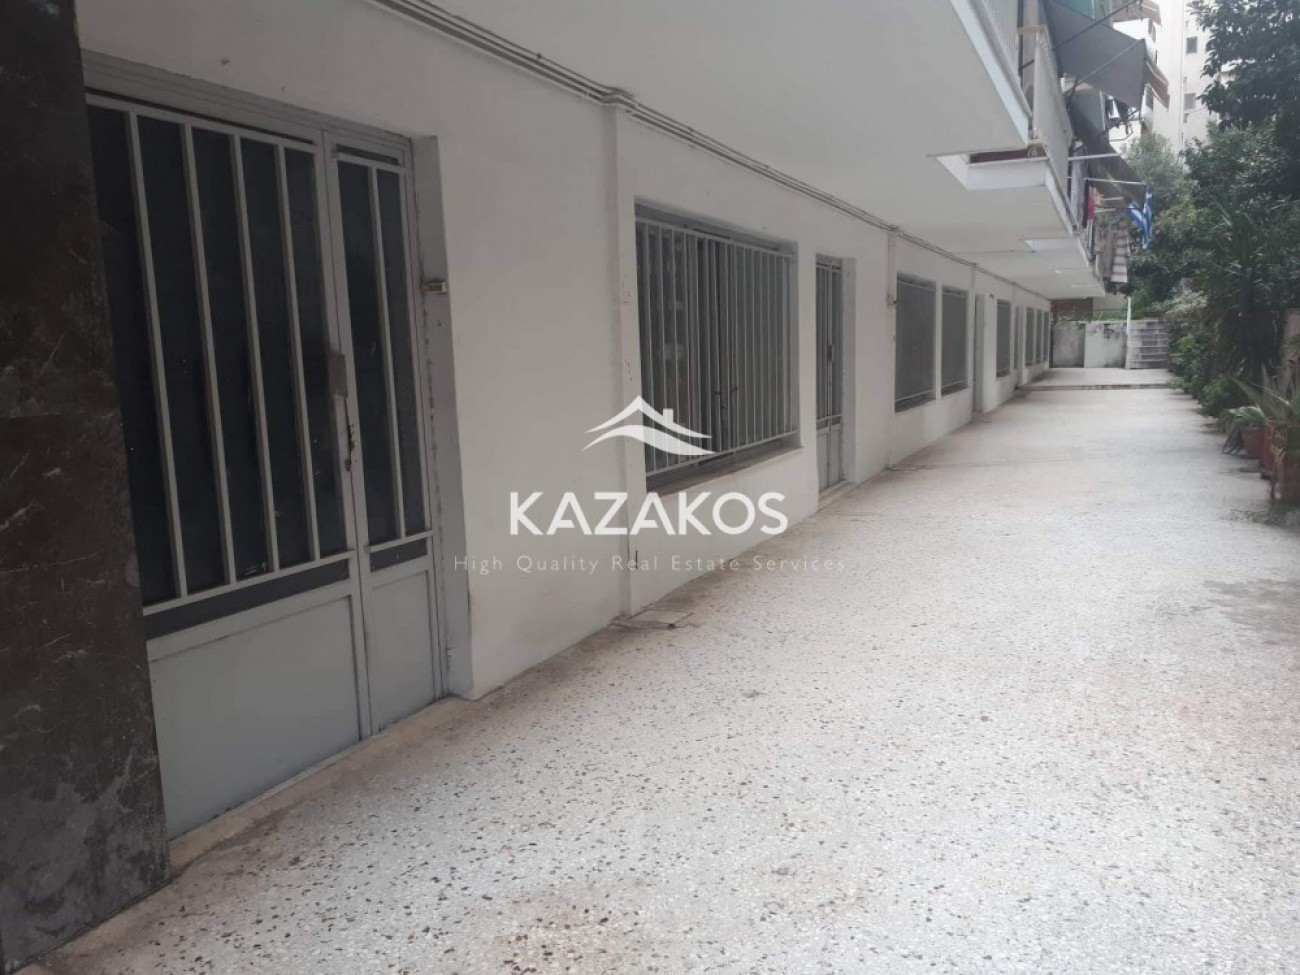 Commercial Other for Sale in Saint Eleutherios, Athens City Center, Greece